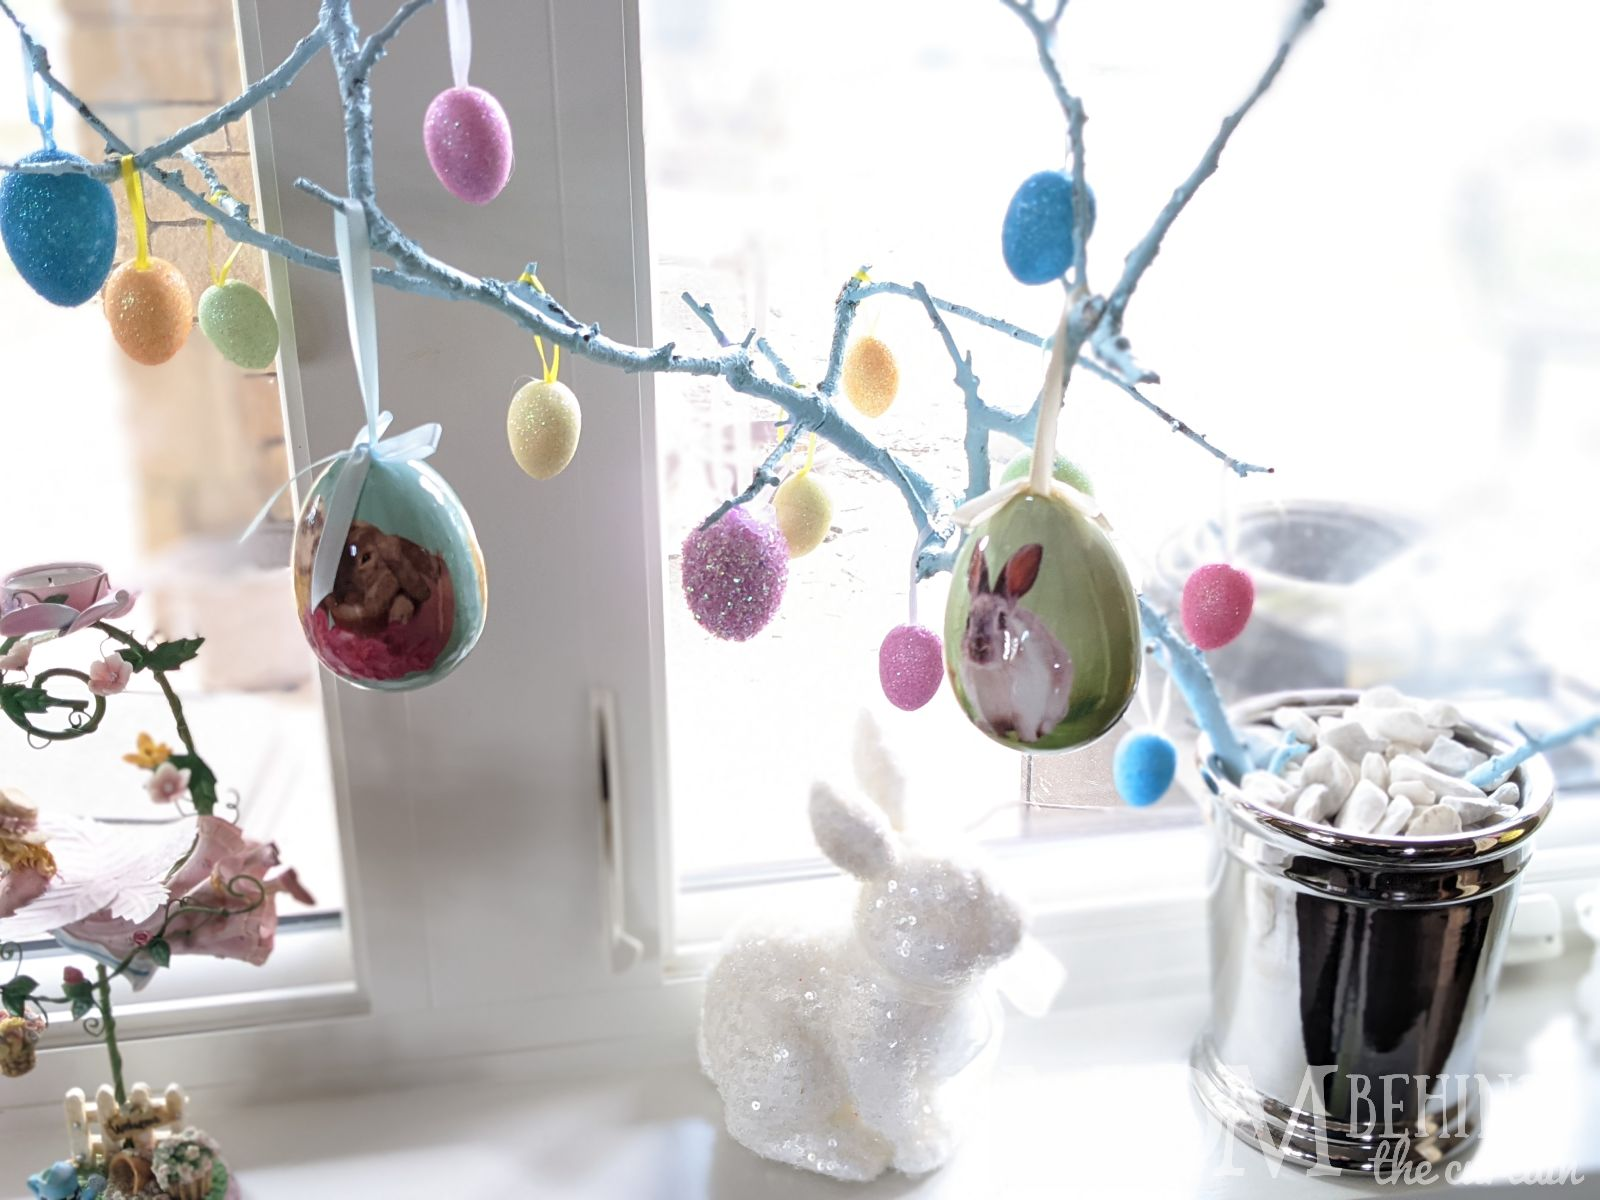 Easter tree diy decor from a branch.